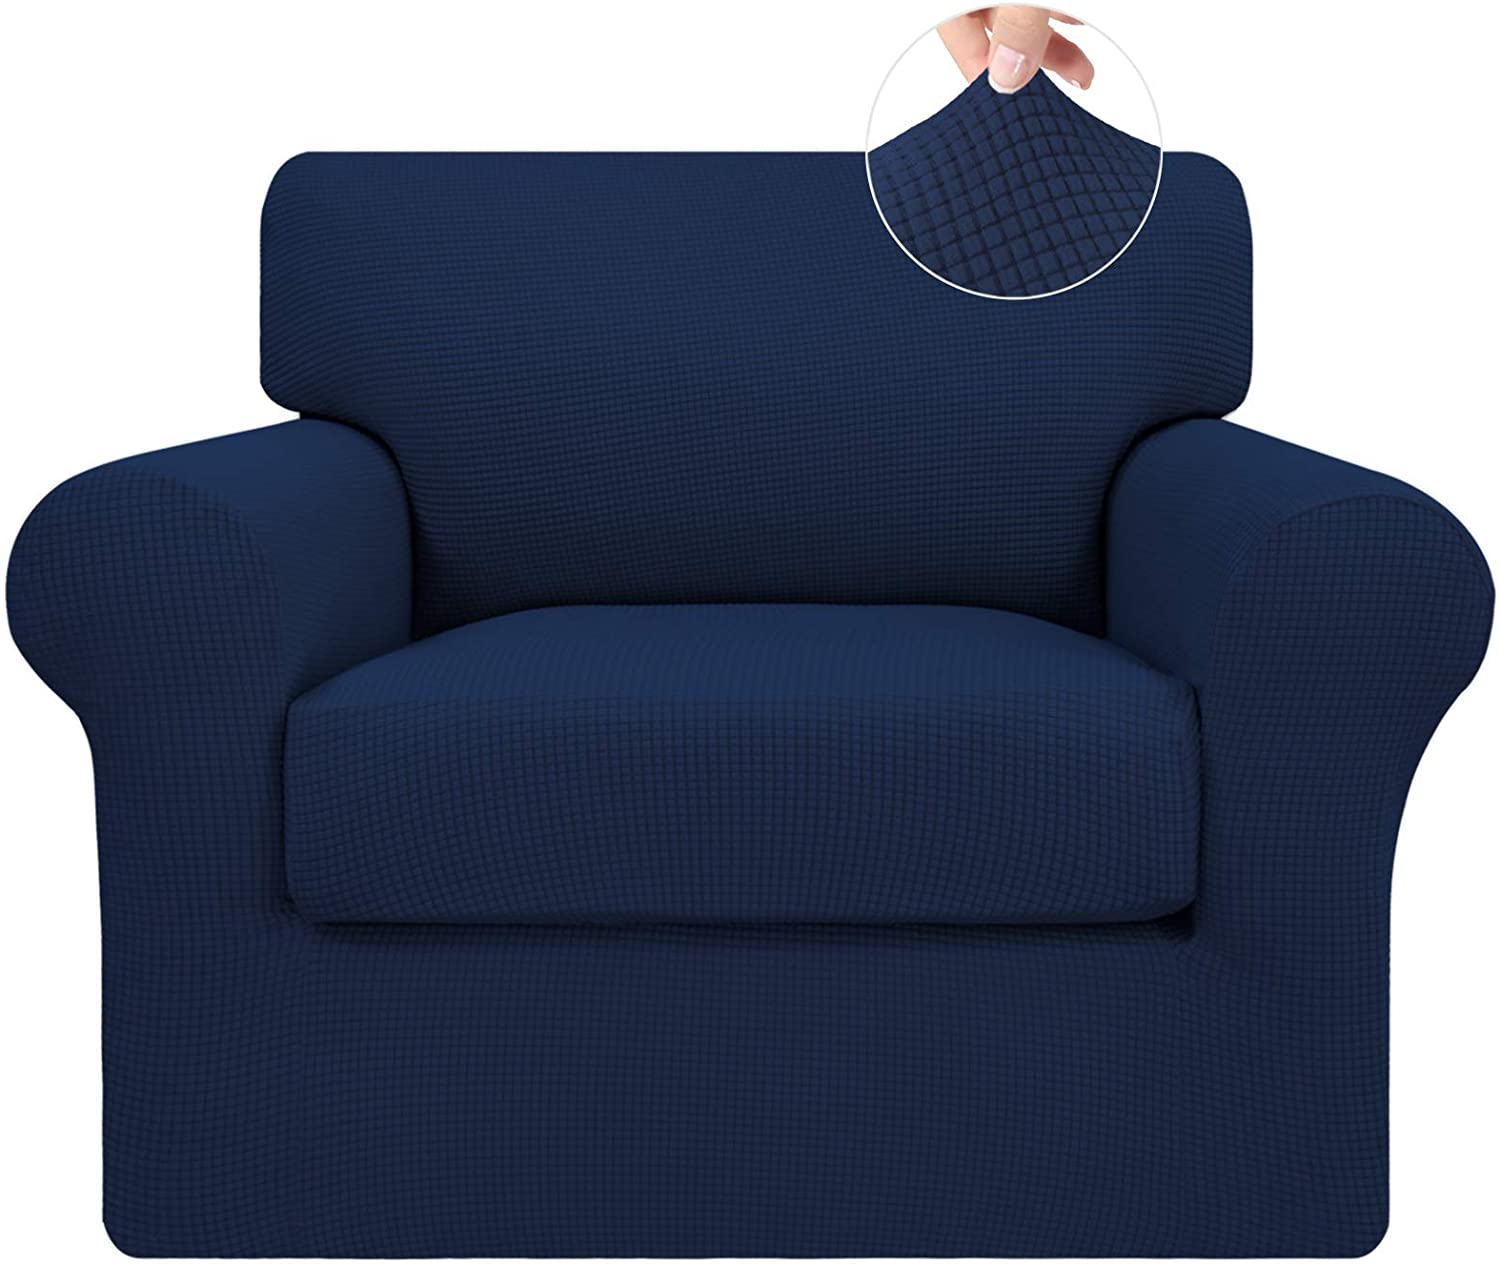 Easy-Going 2 Pieces Stretch Couch Cover Sofa Cover for Dogs Washable Sofa Slipcover for Separate Cushion Couch Spandex Jacquard Fabric Elastic Furniture Protector for Pets,Kids(Navy, Chair)